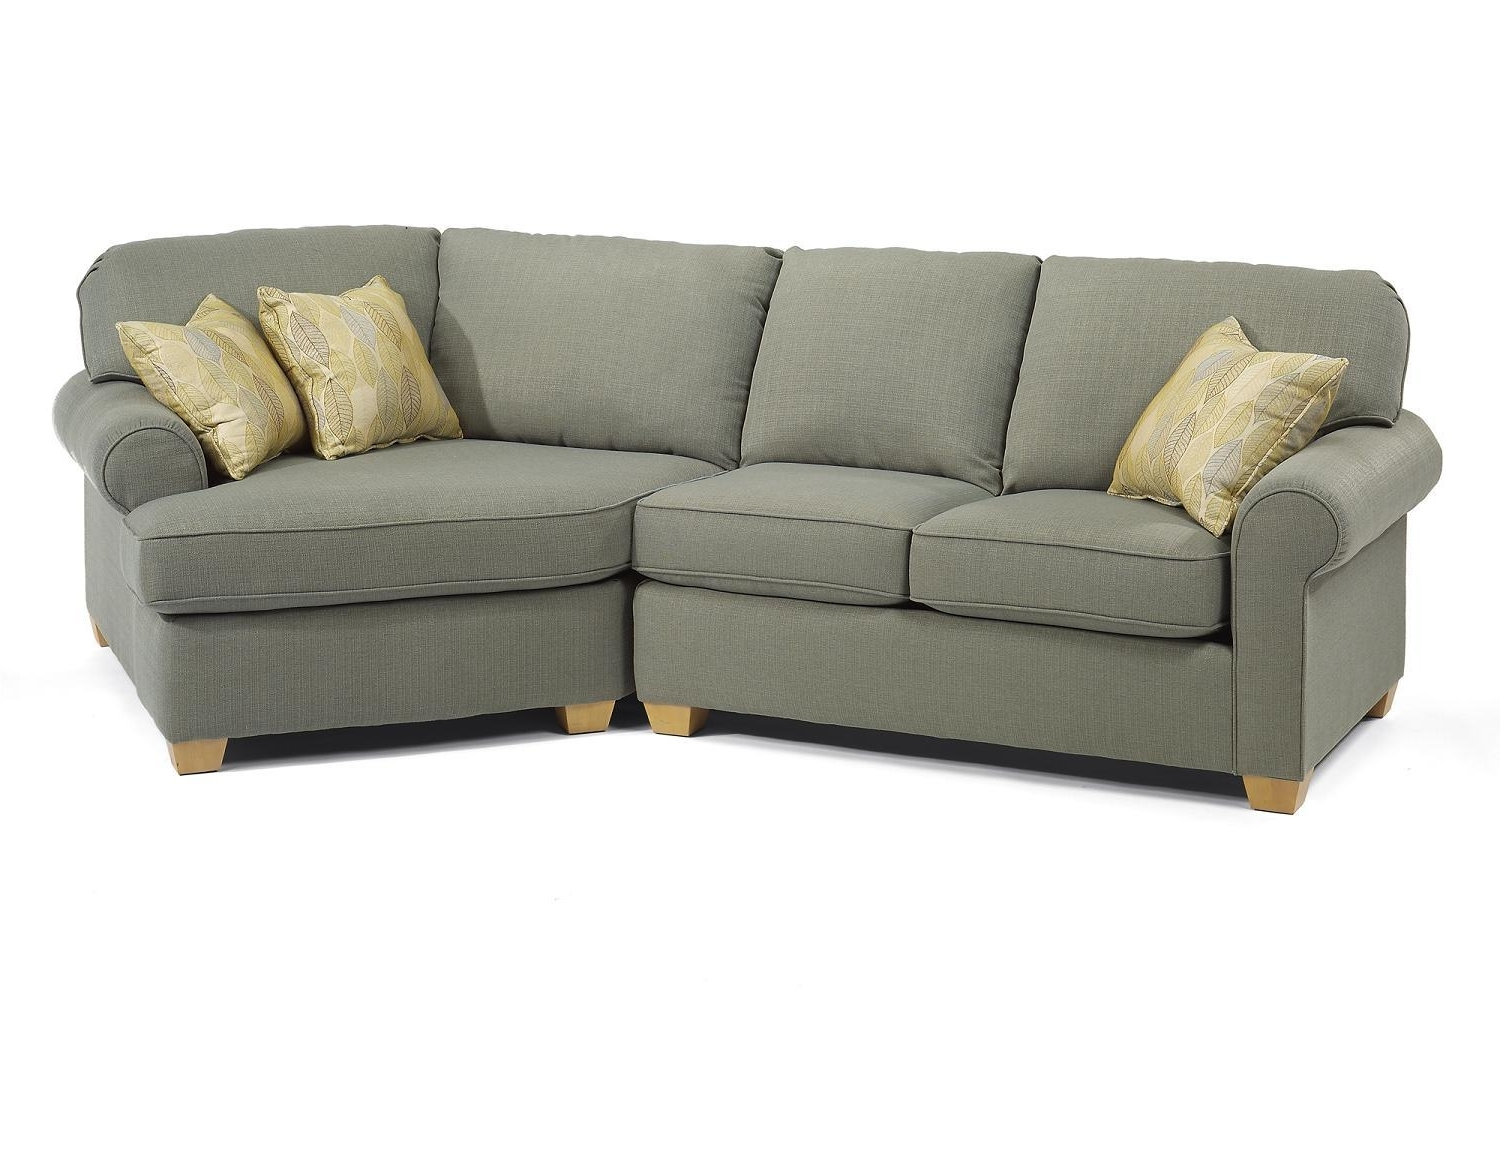 Most Up To Date Couches With Chaise Lounge Regarding Furniture: Cheap Chaise Lounge (View 11 of 15)